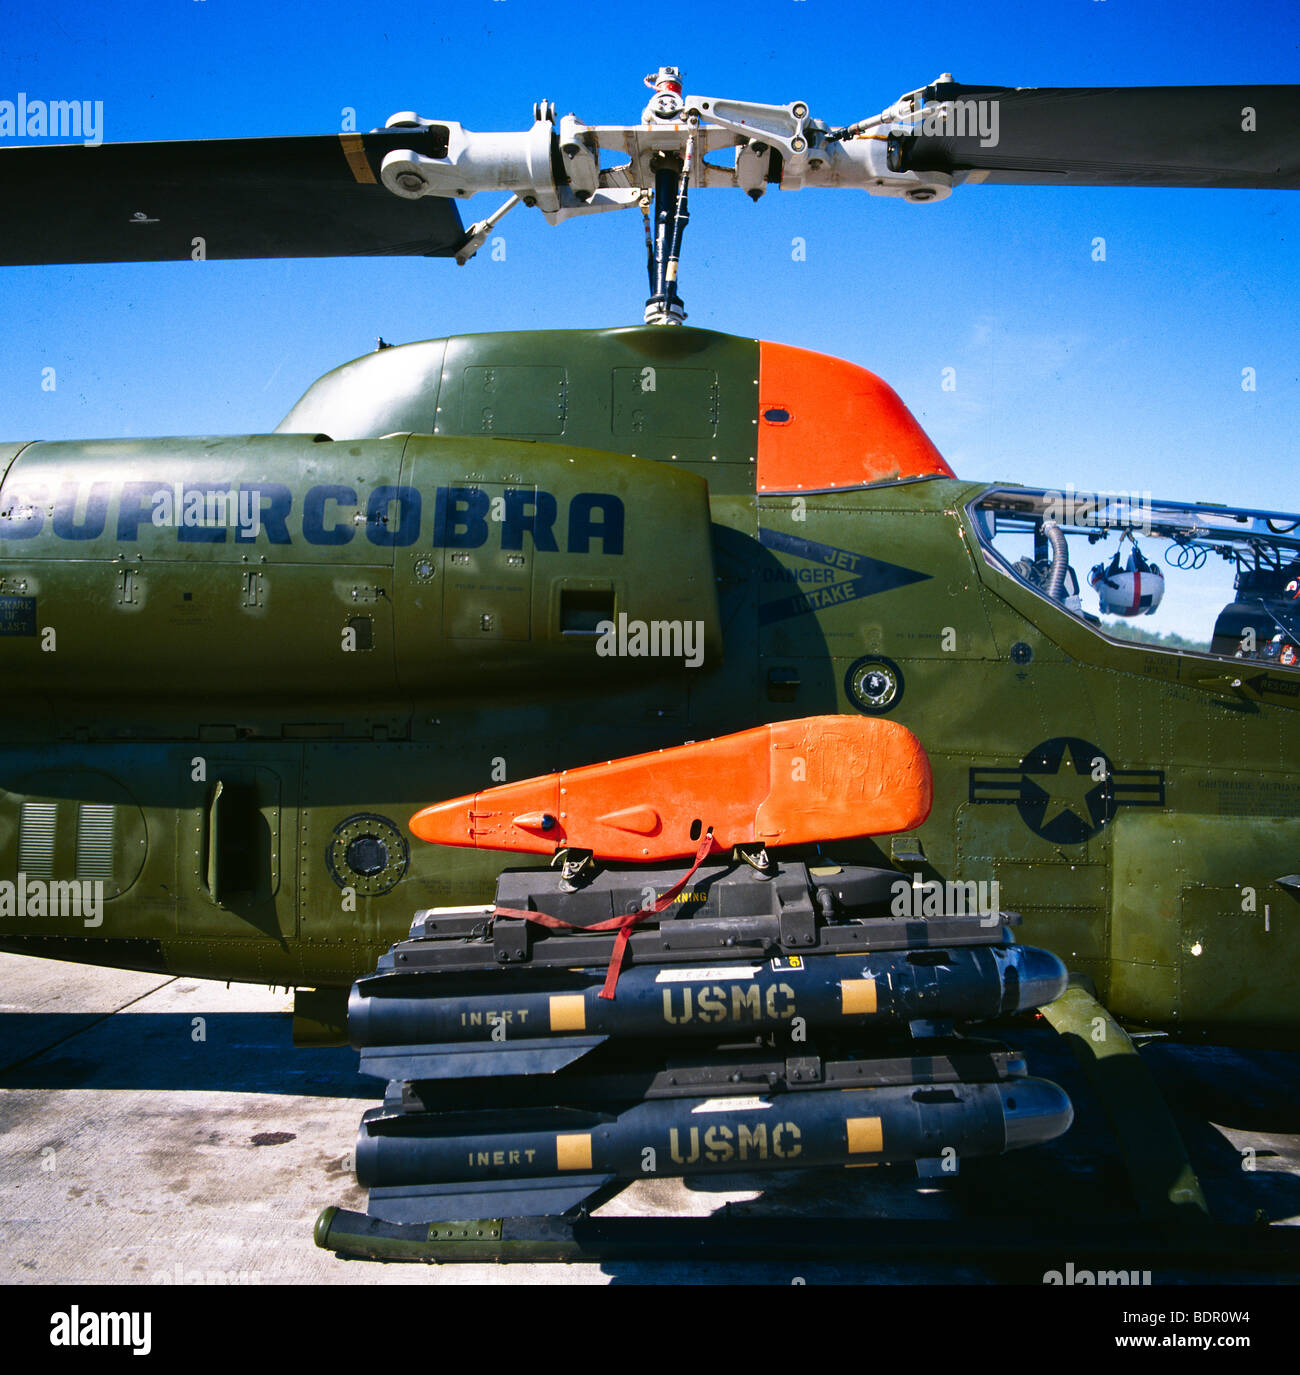 Supercobra Helicopter at manufacturing facility in Dallas Texas - Stock Image